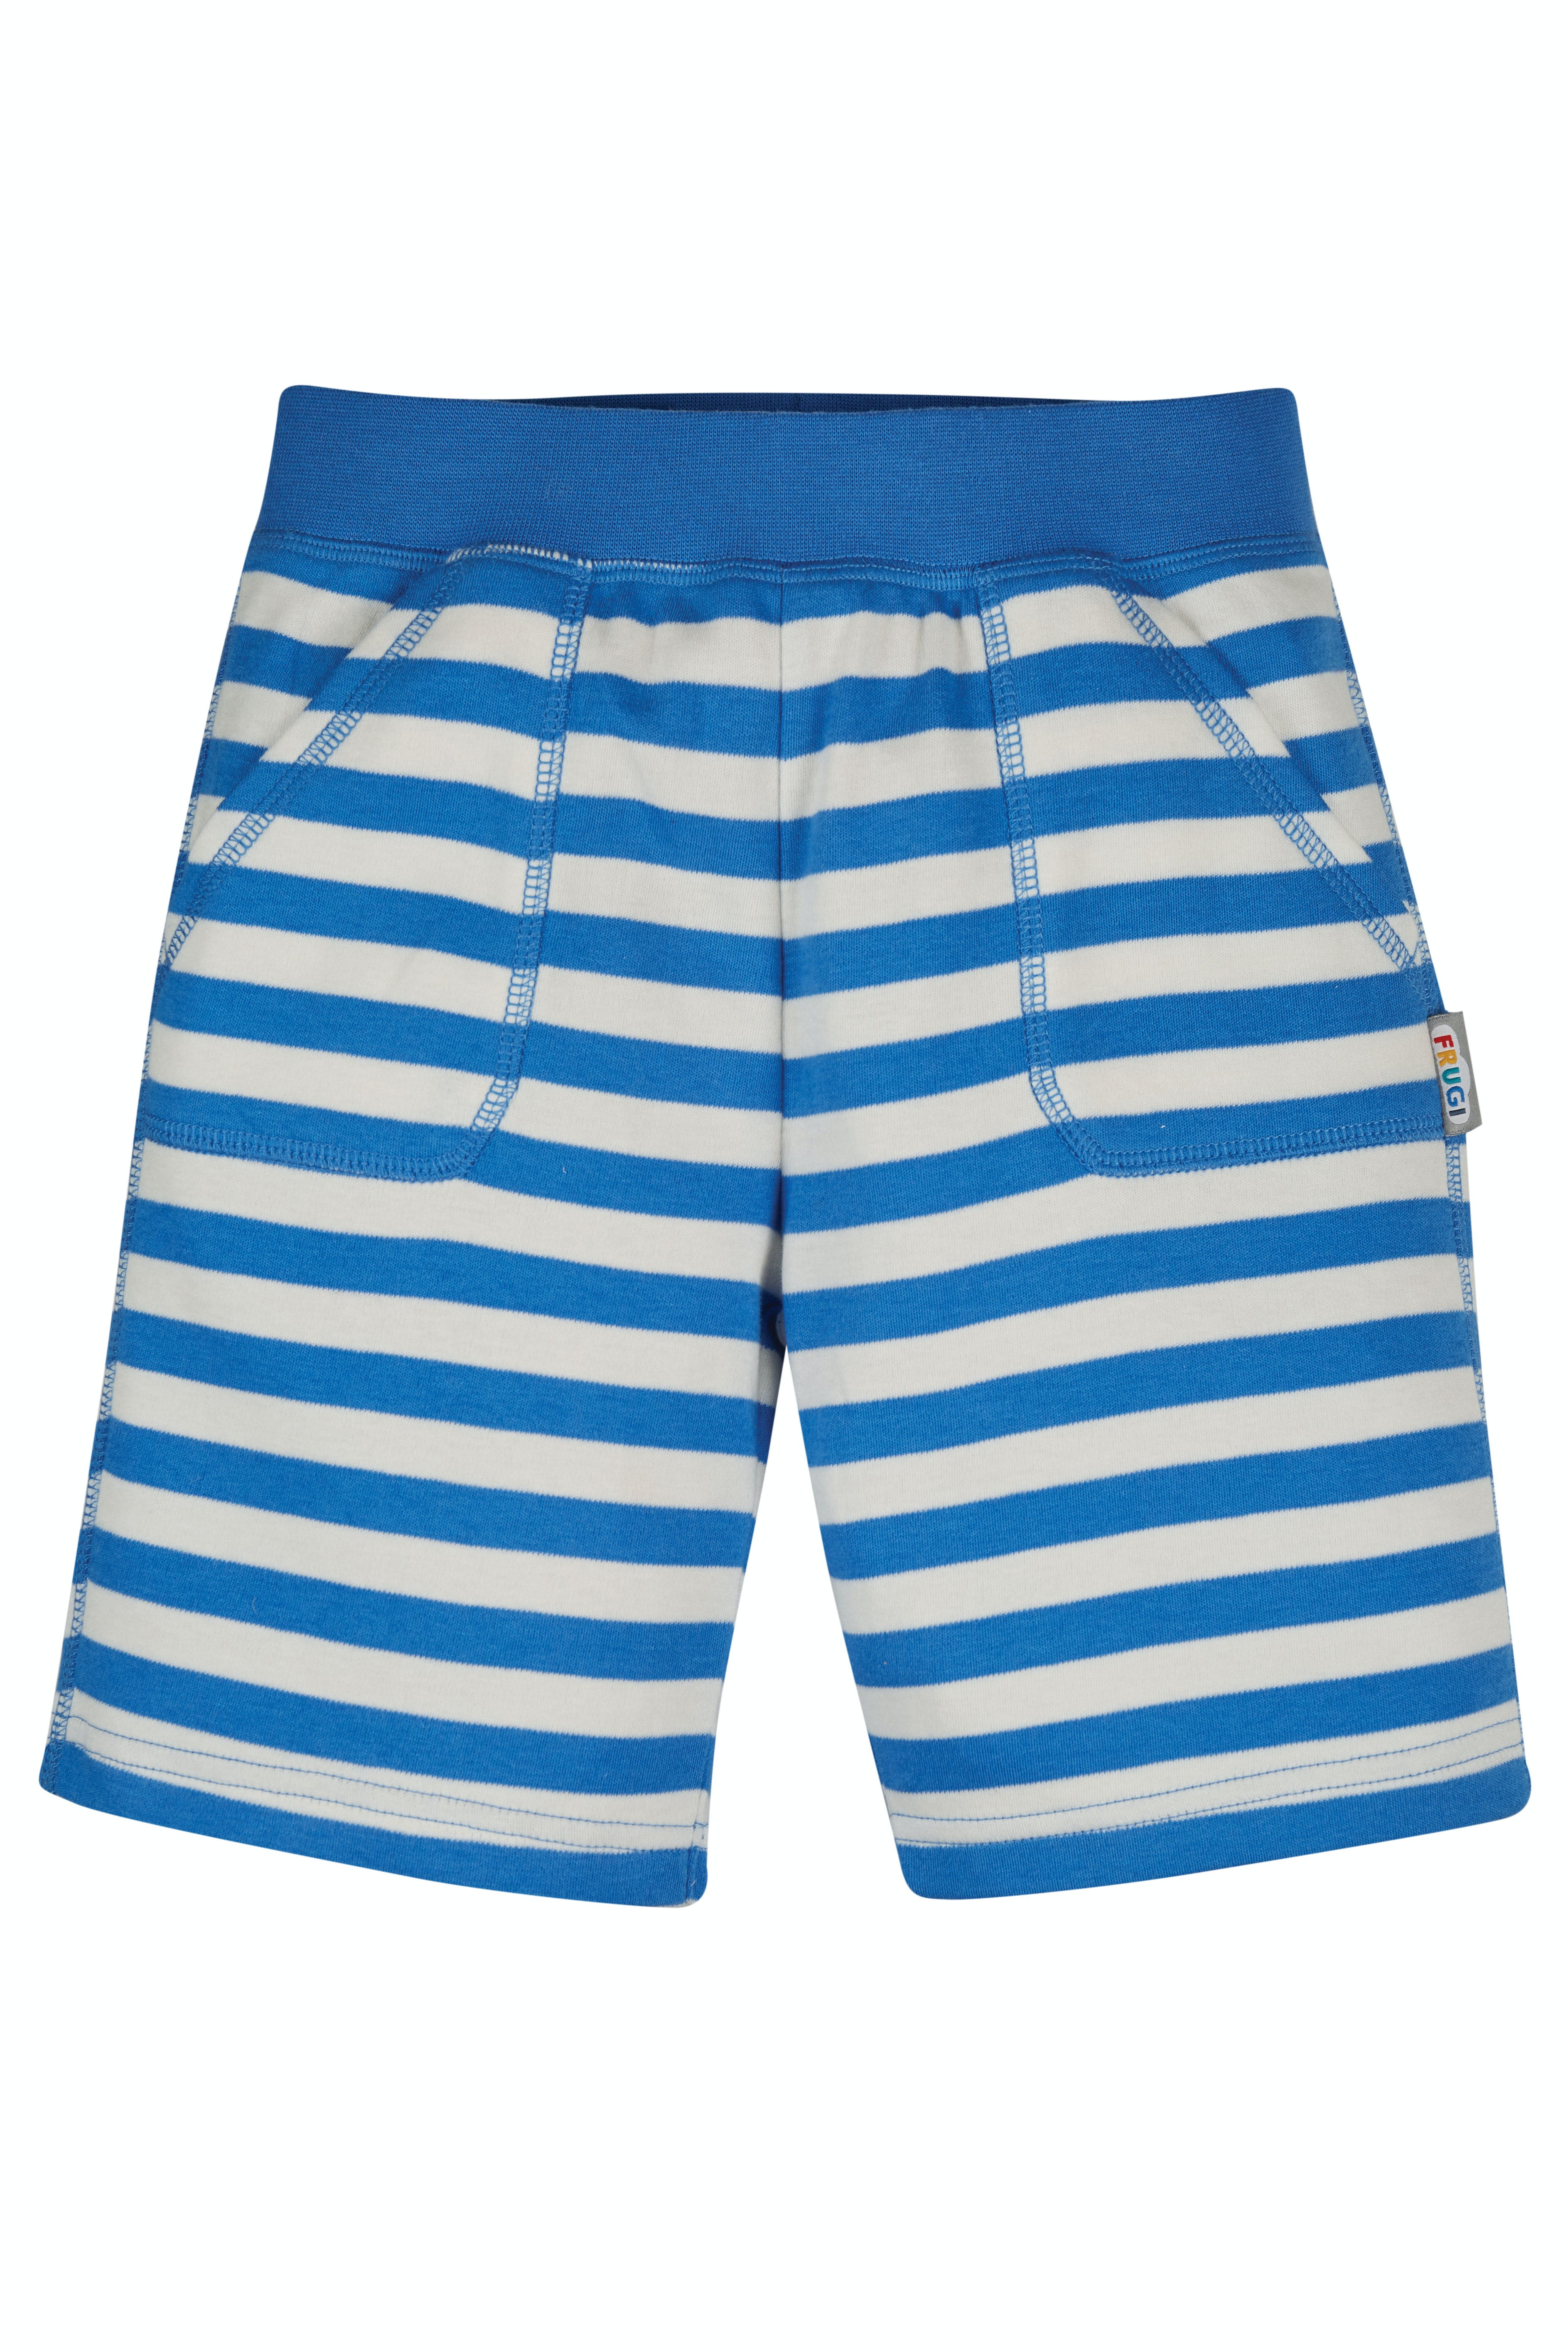 Click to view product details and reviews for Favourite Shorts.